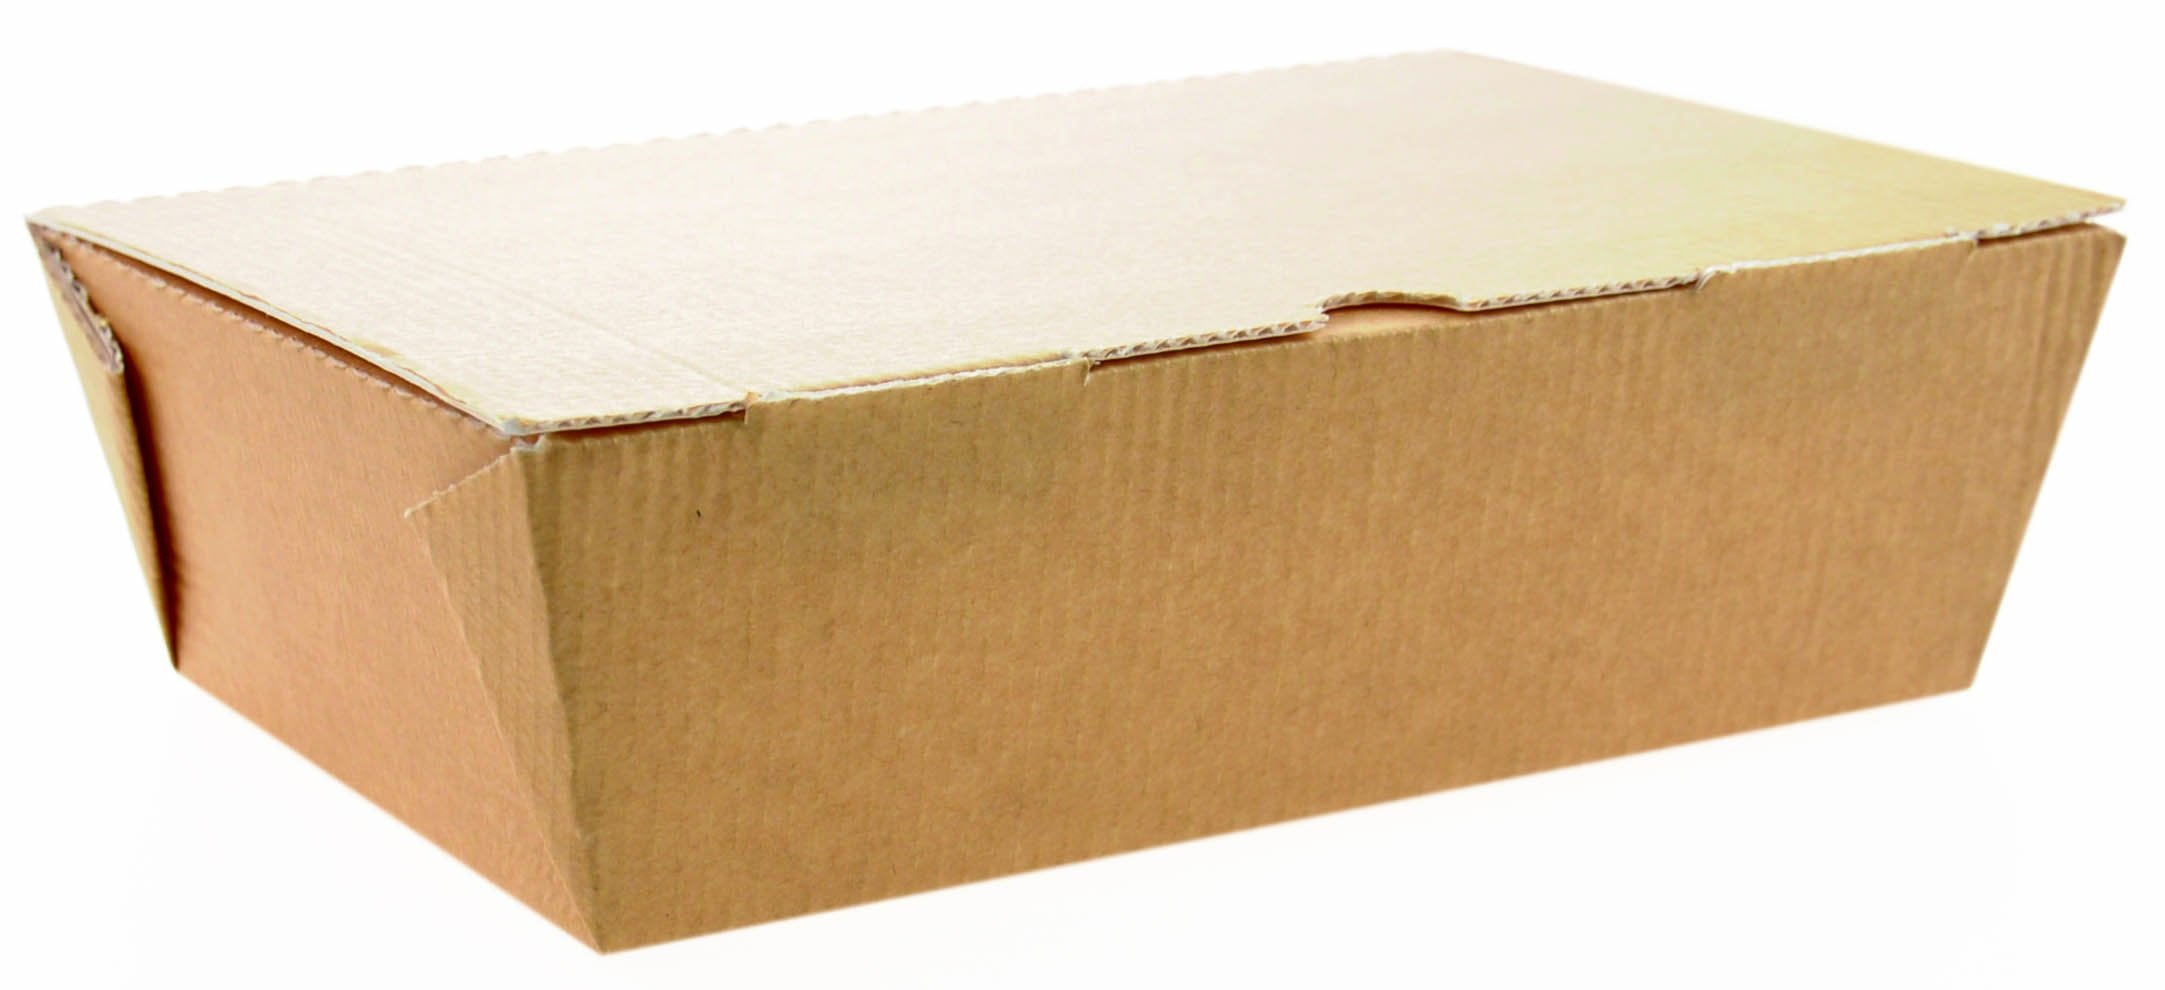 Large Corrugated Food To Go Meal Boxes - Gafbros